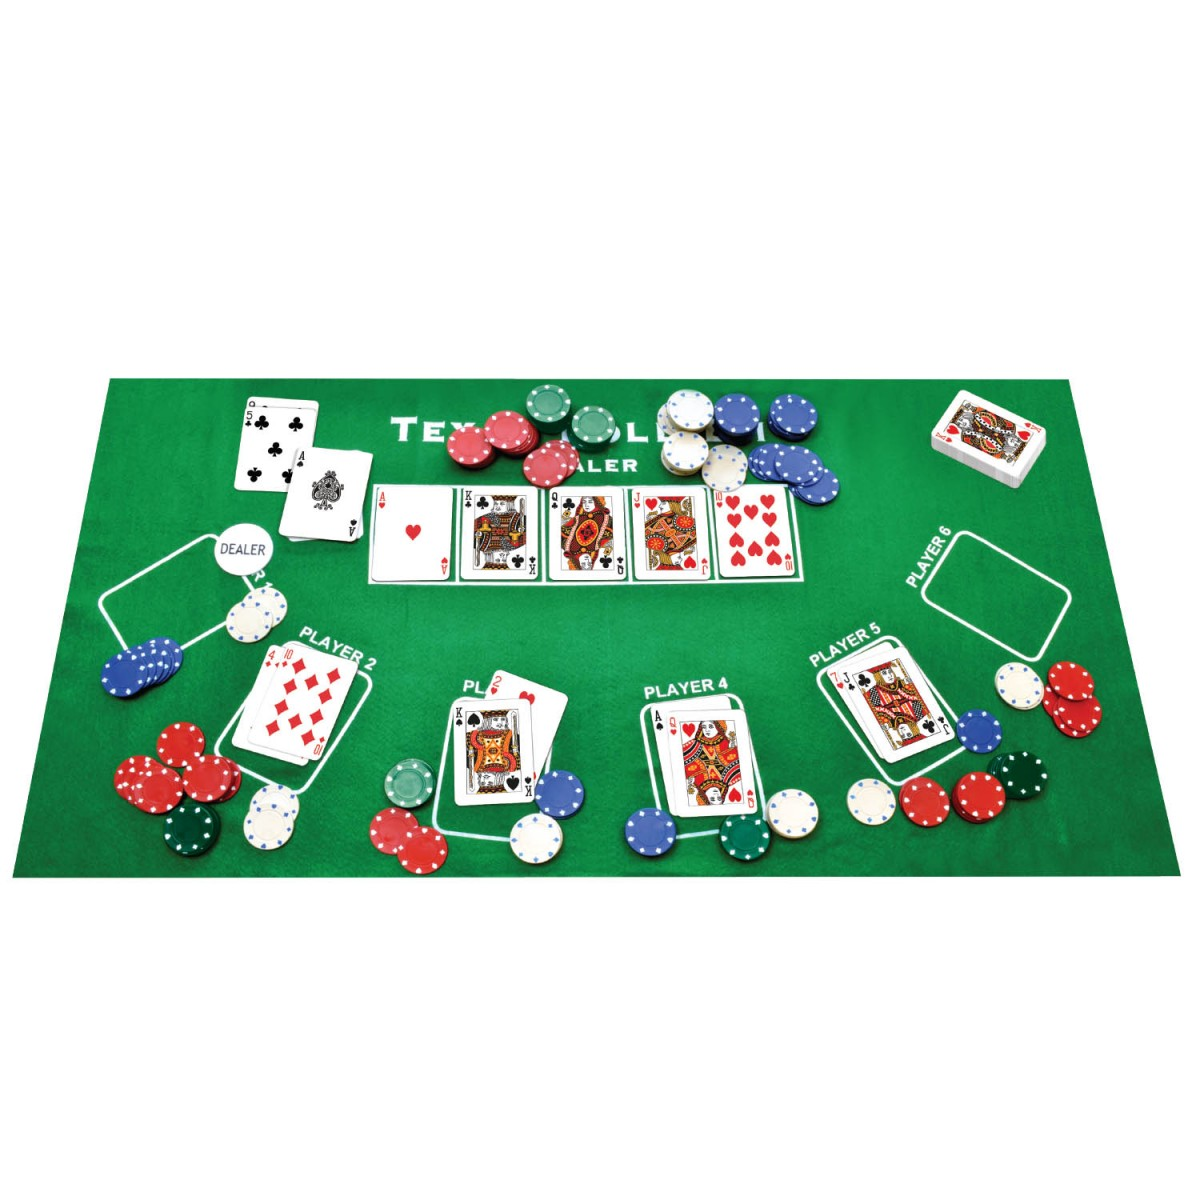 Home game poker chips